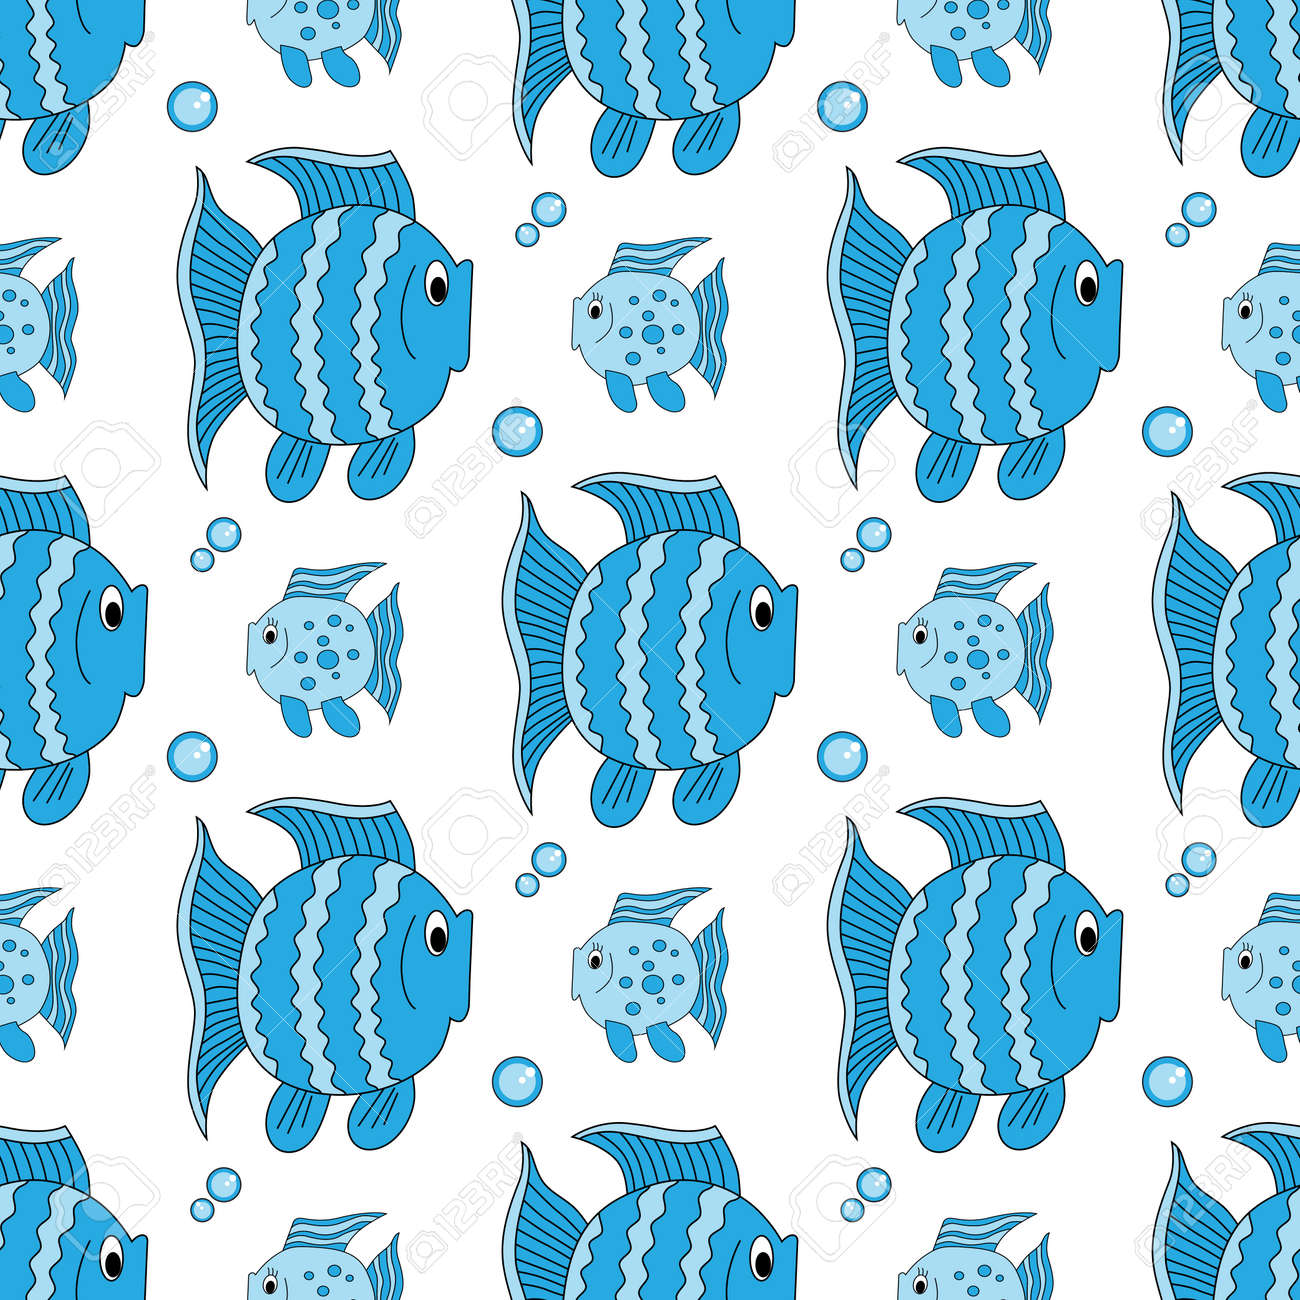 Blue funny fish pattern. Stock Vector - 92294977